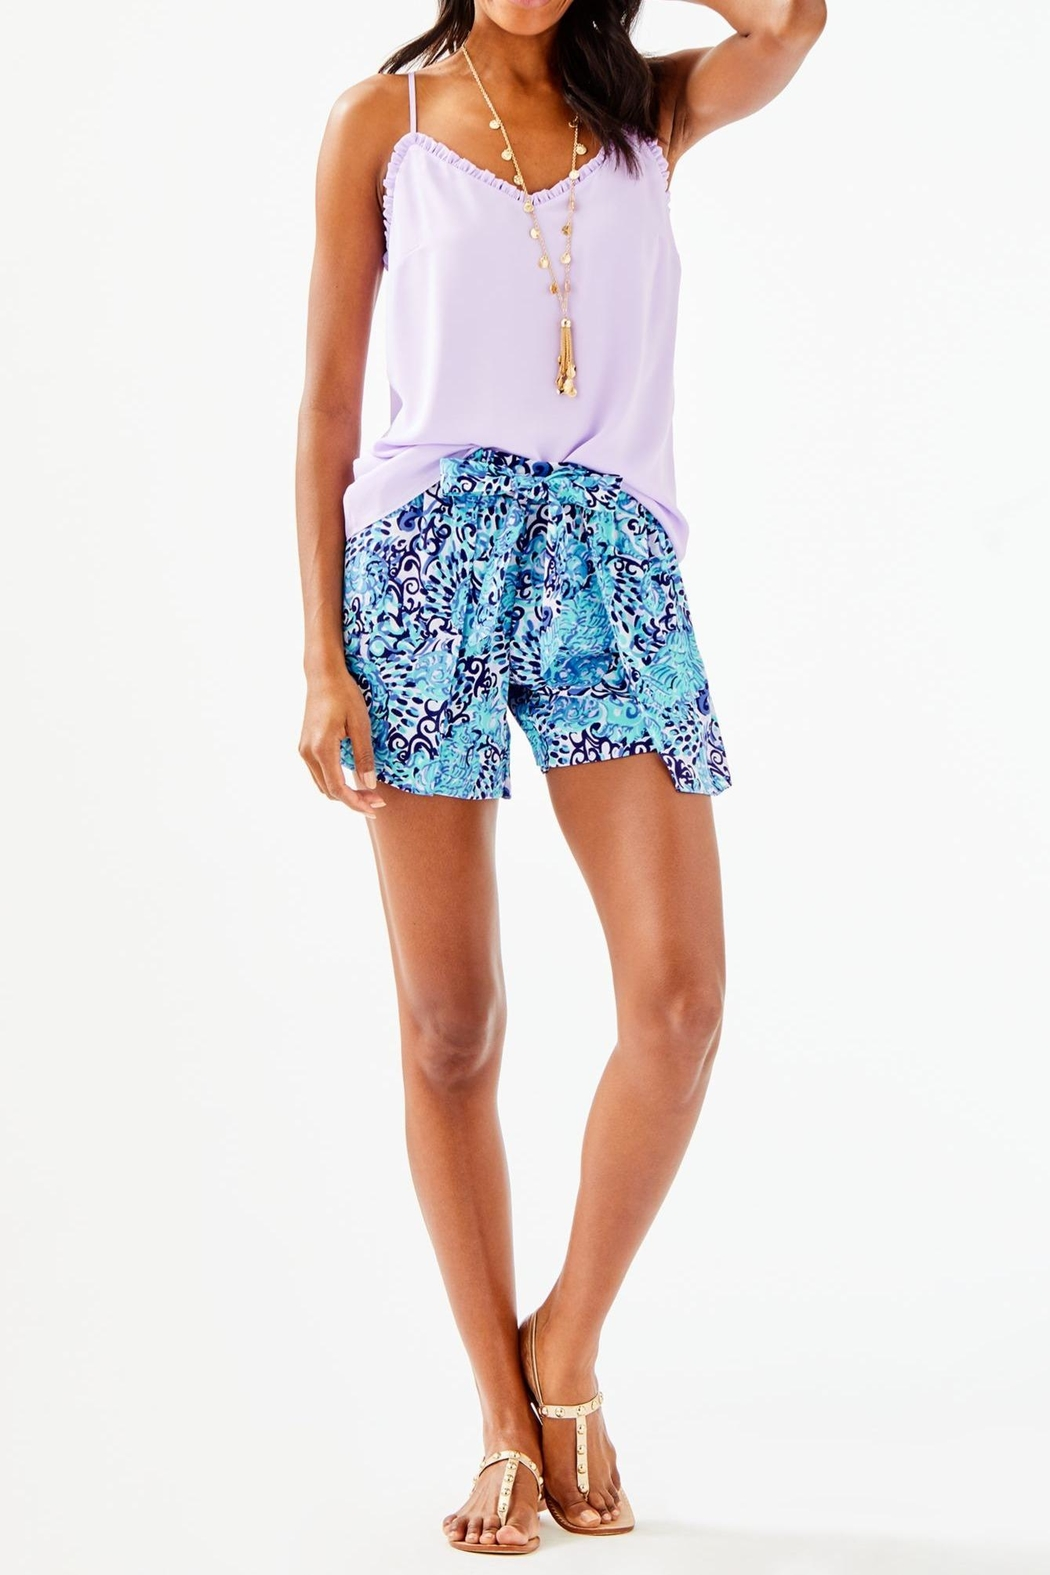 Lilly Pulitzer Ruffled Dusk Top - Side Cropped Image